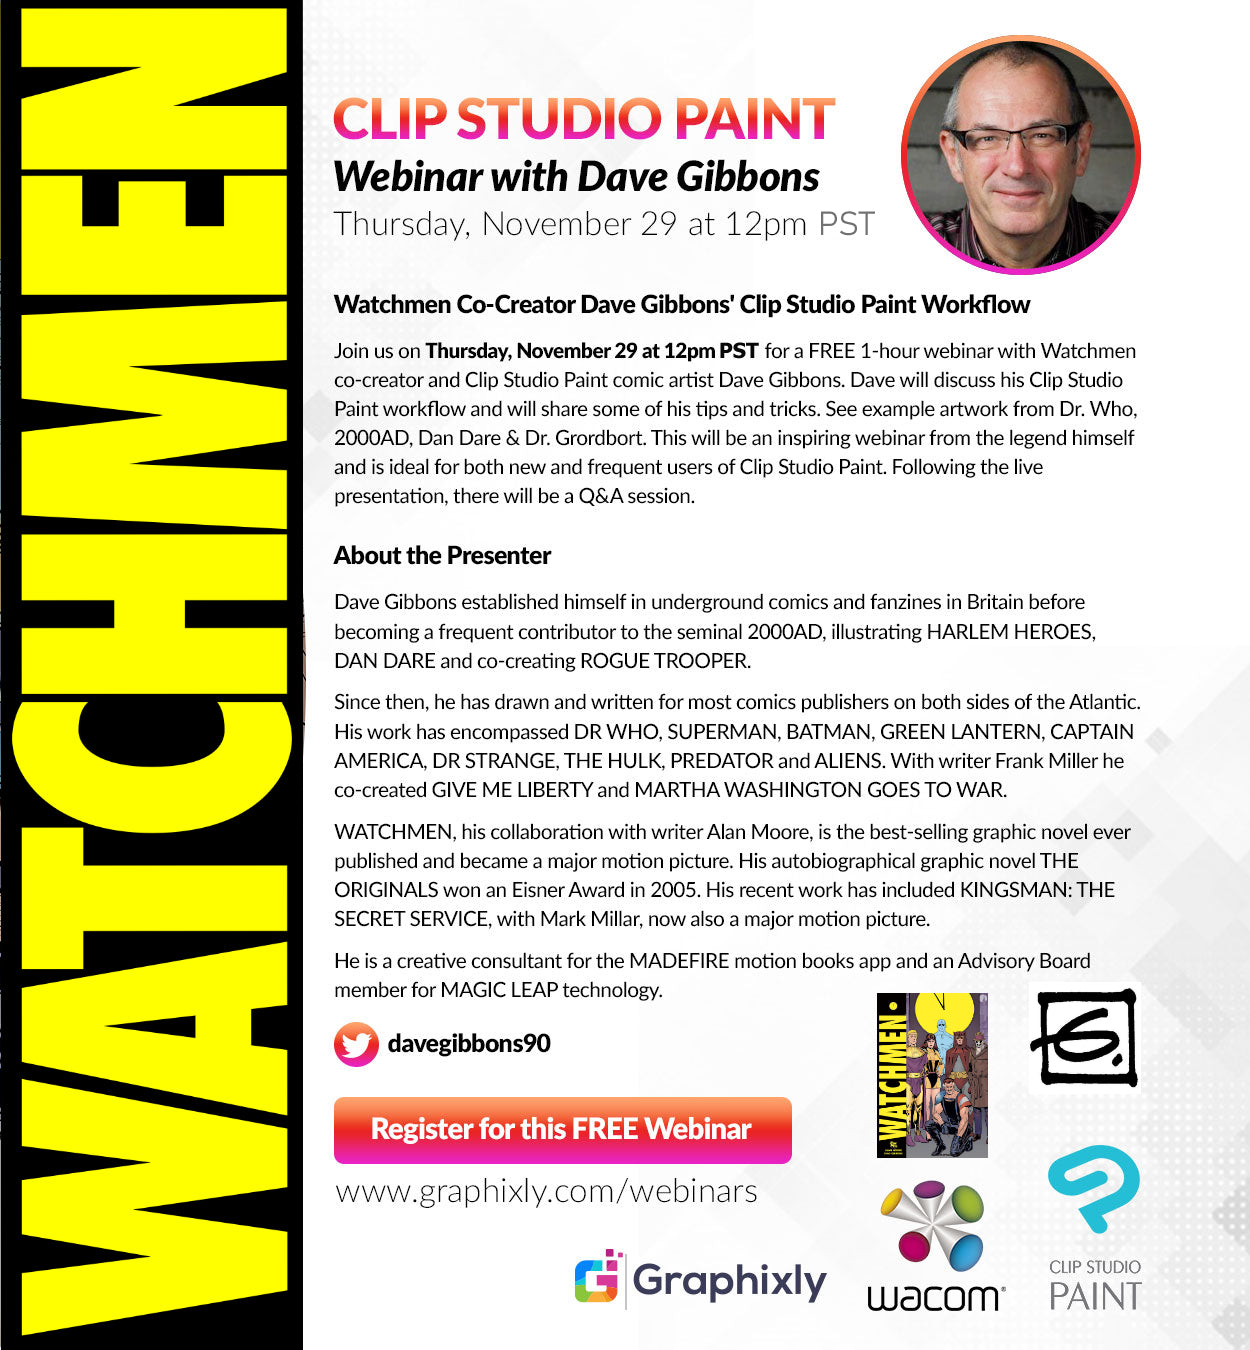 Webinar - WATCHMEN Co-Creator Dave Gibbons' CLIP STUDIO PAINT Workflow